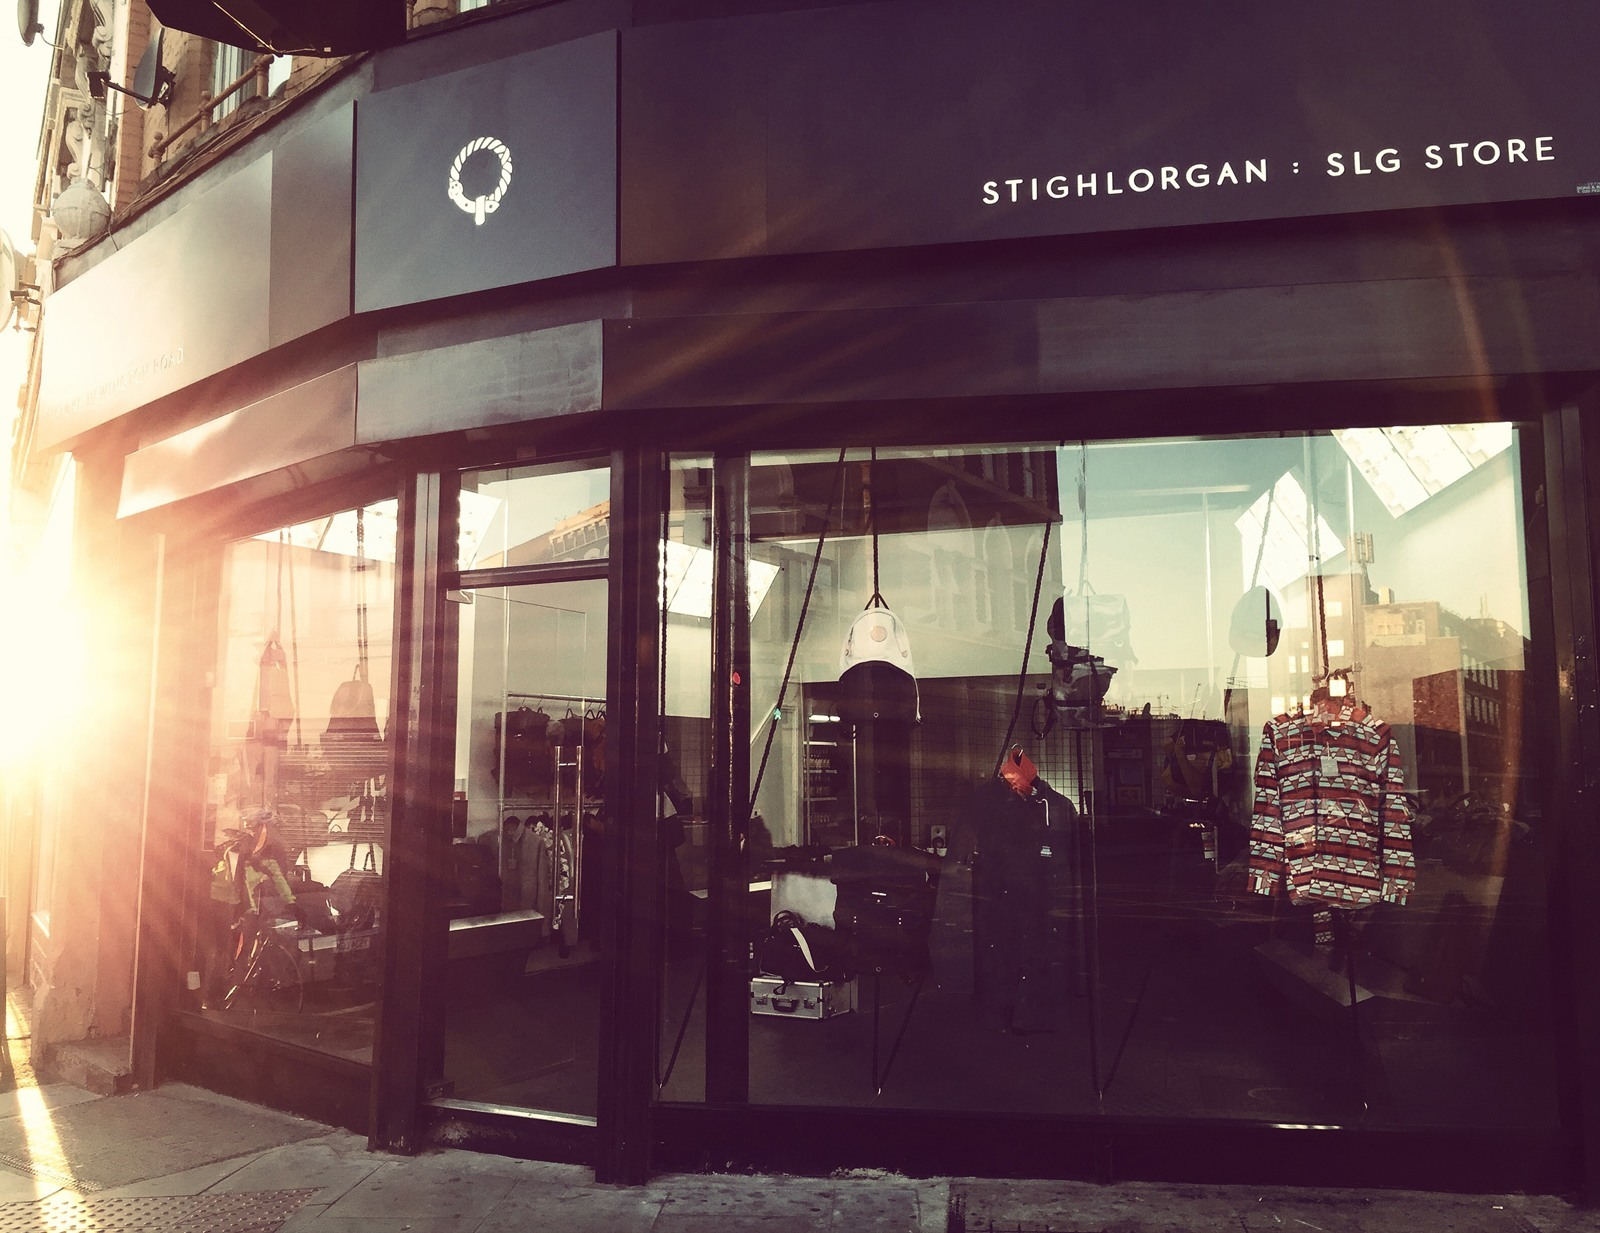 SLG Store